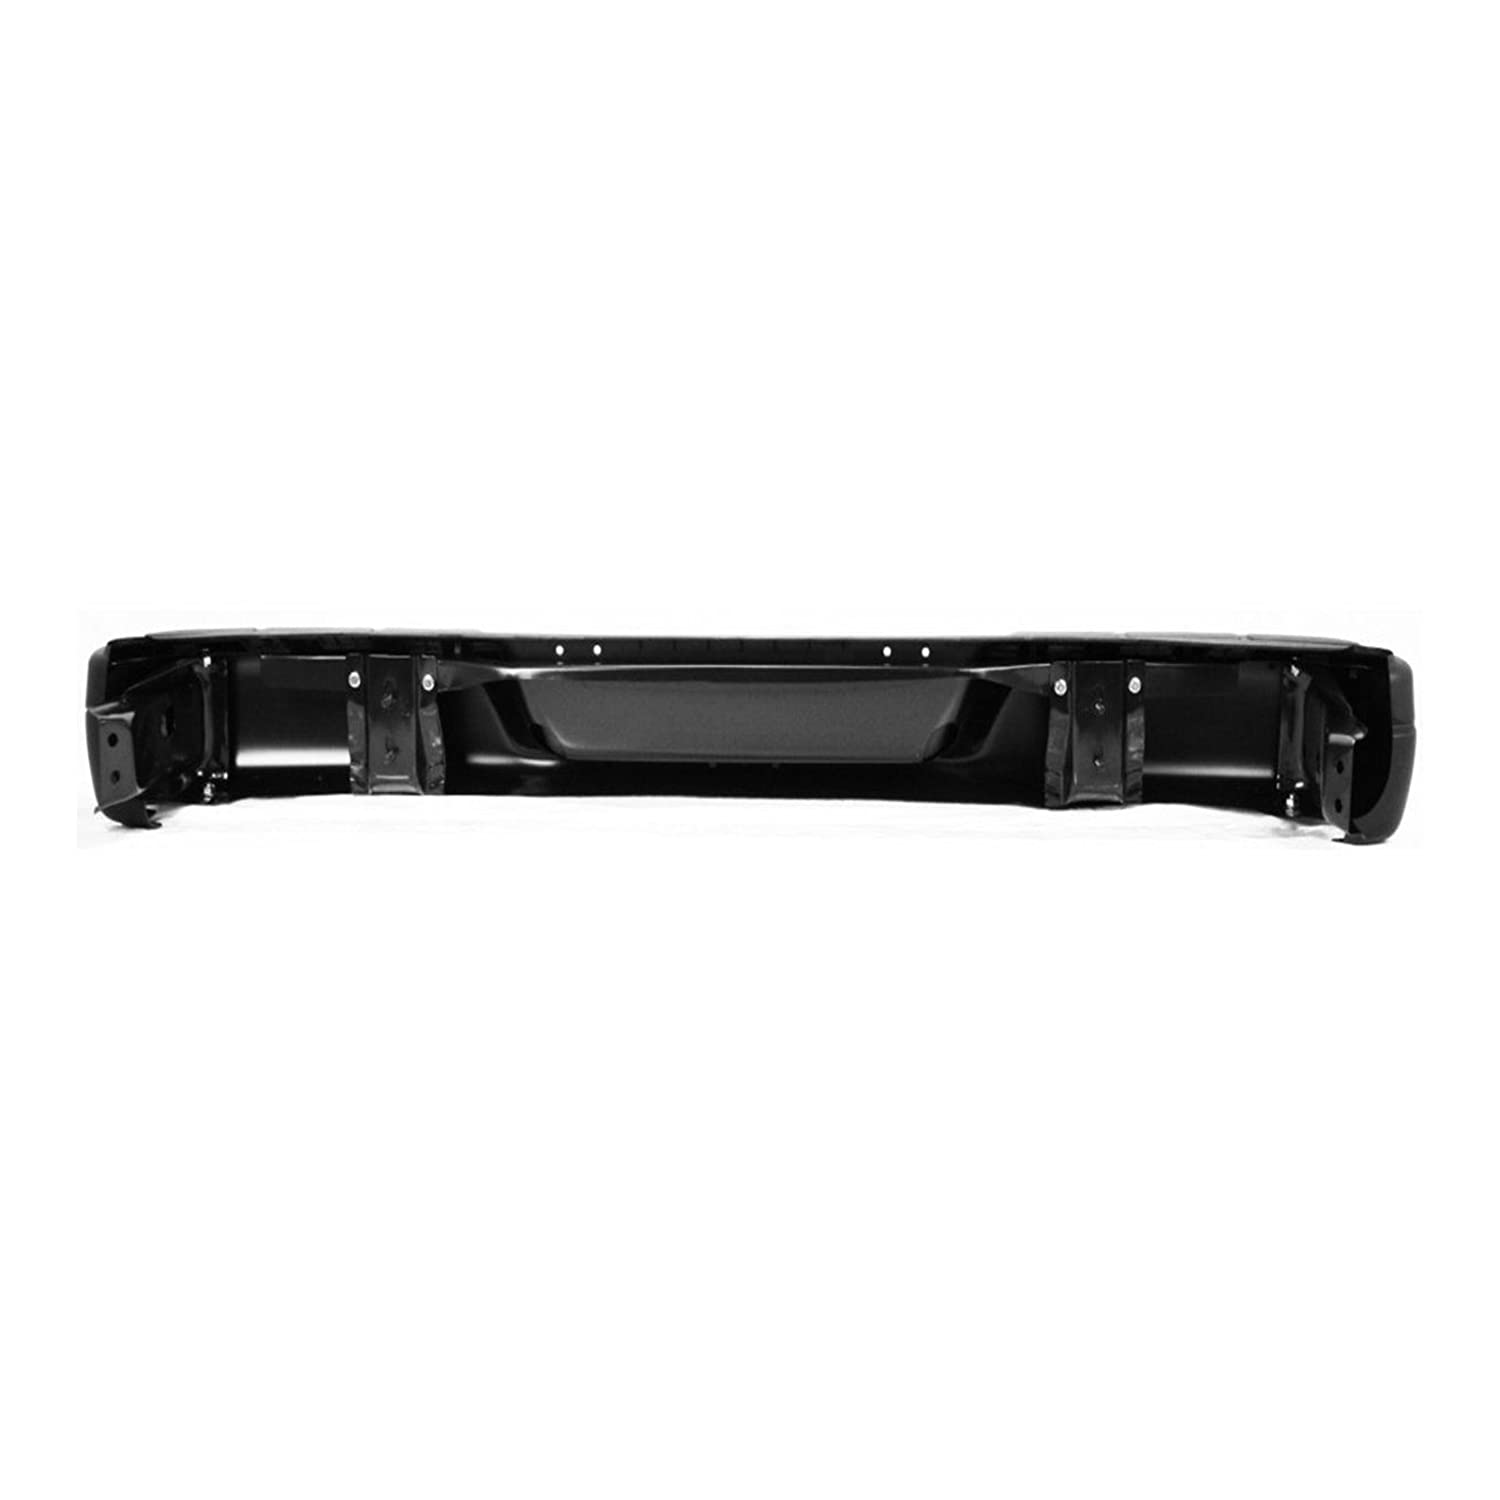 Steel Rear Bumper Assembly for 1996-2017 Chevy Express /& GMC Savana 96-17 Primered GM1103143 MBI AUTO